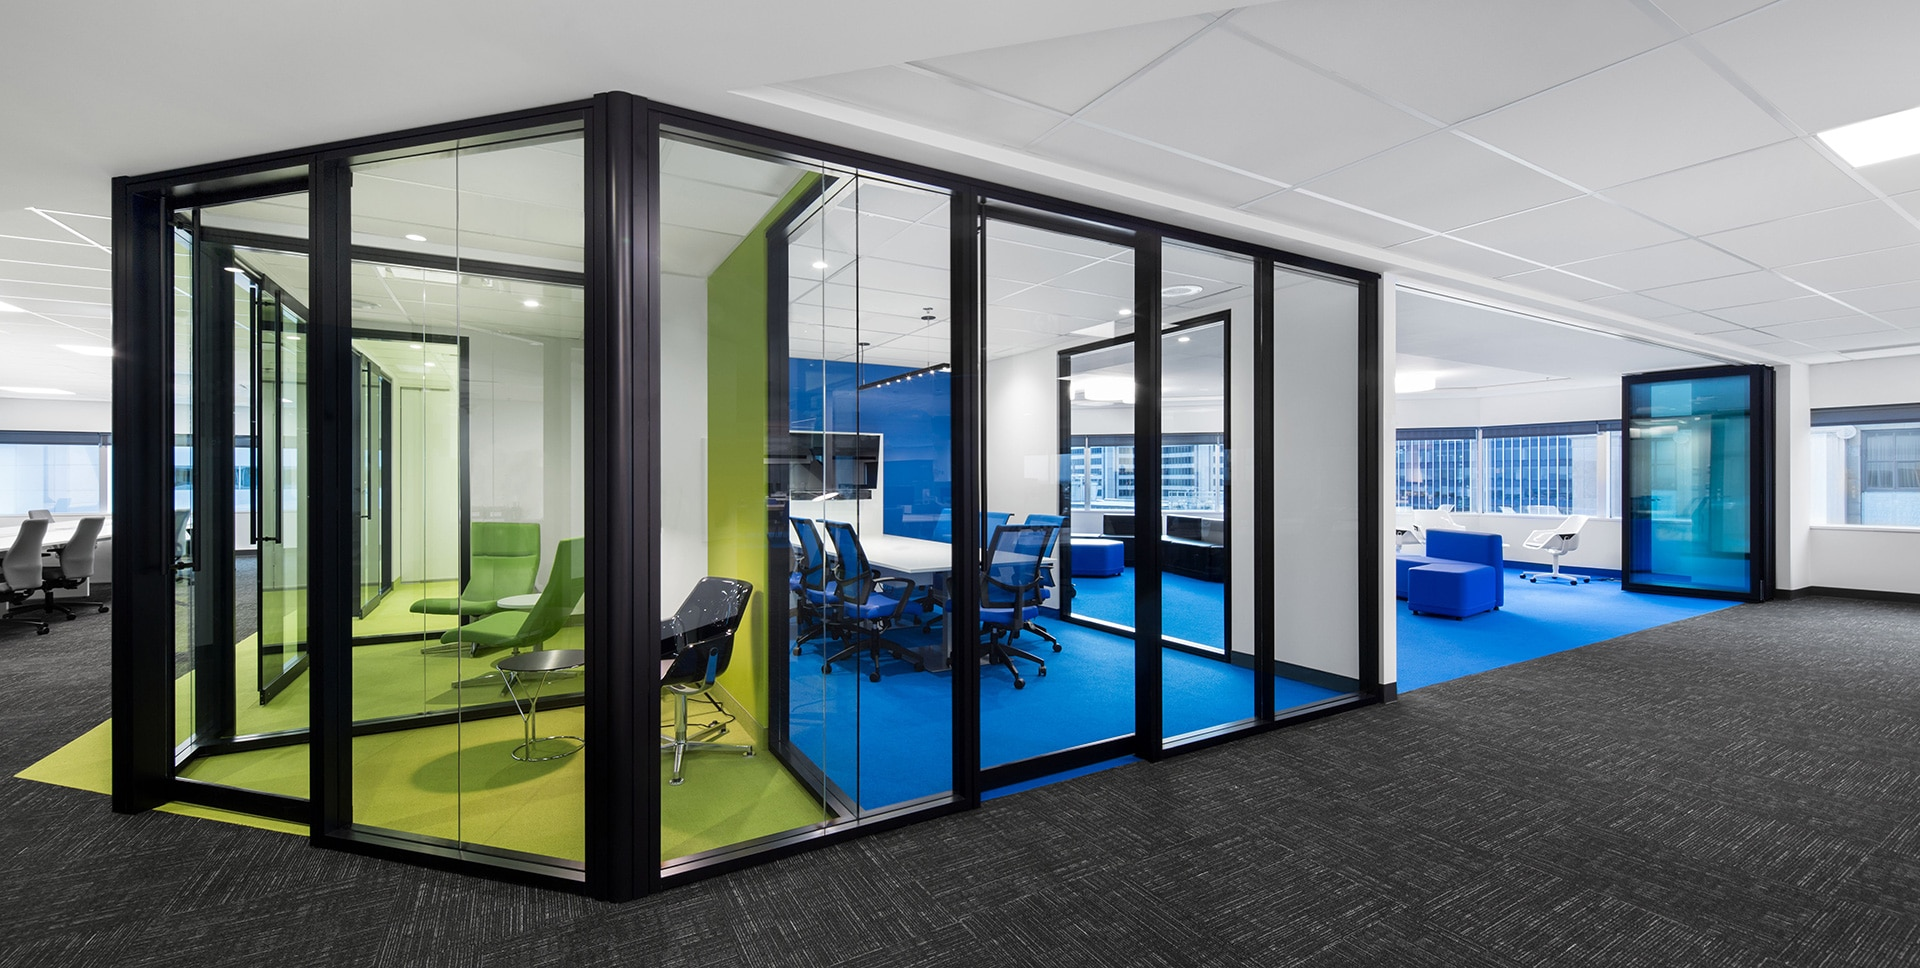 Green and blue meeting rooms at National Bank headquarters in Montreal designed by VAD